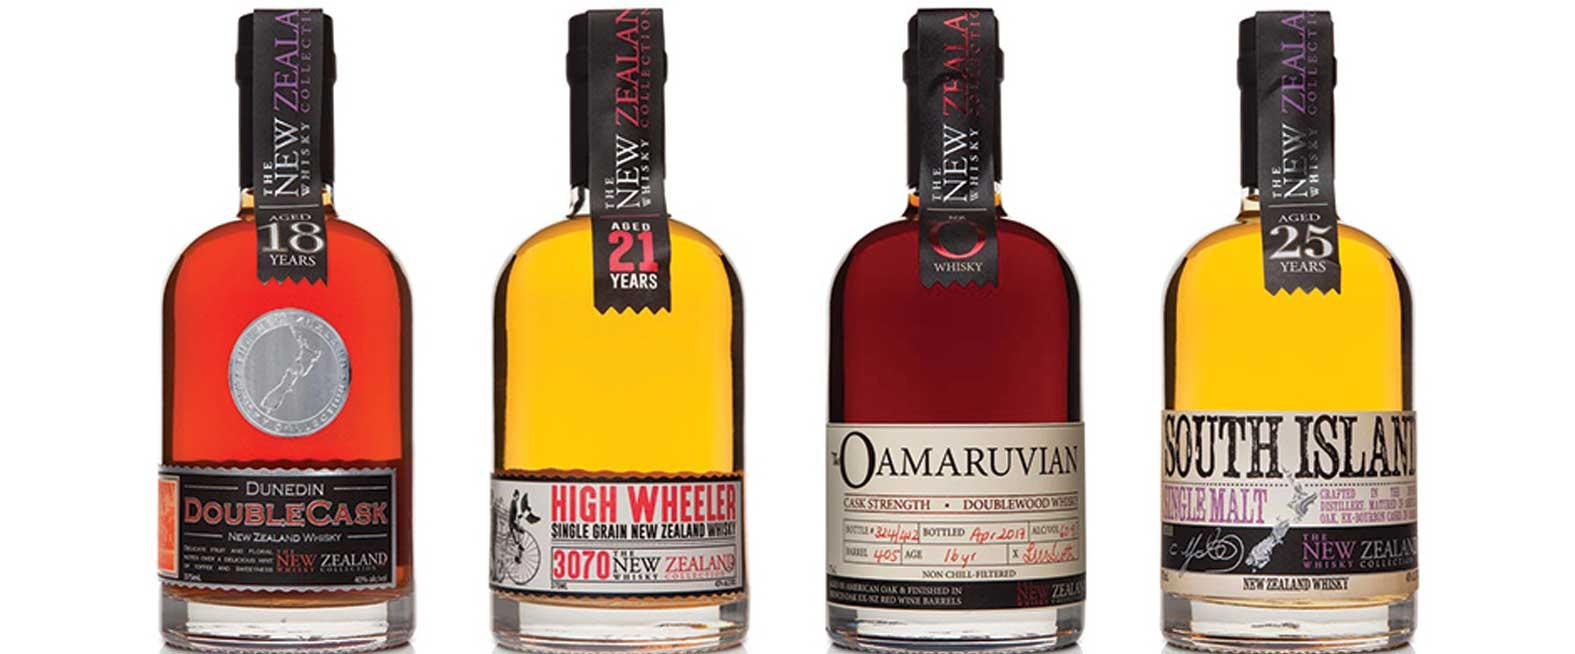 The New Zealand Whisky Collection